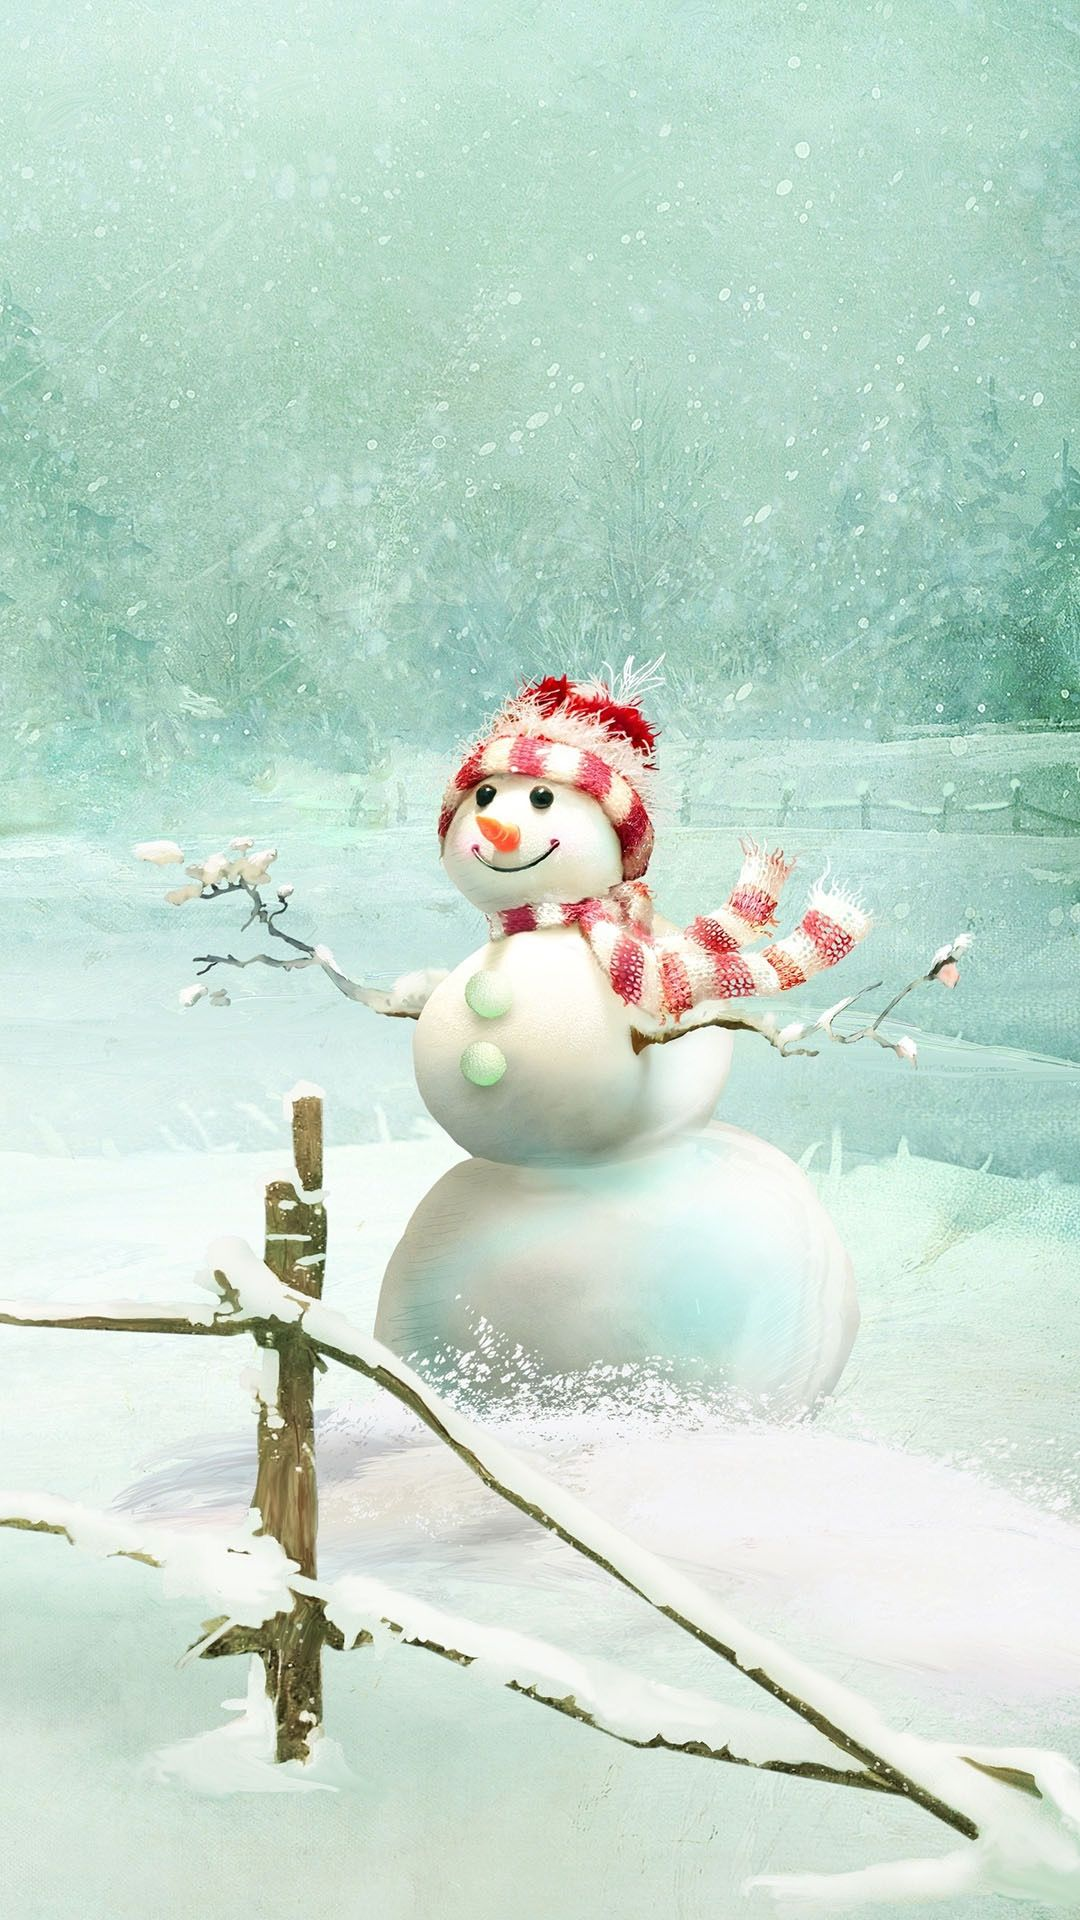 Wallpaper image by Susie Hargis on ChristmasSnowman